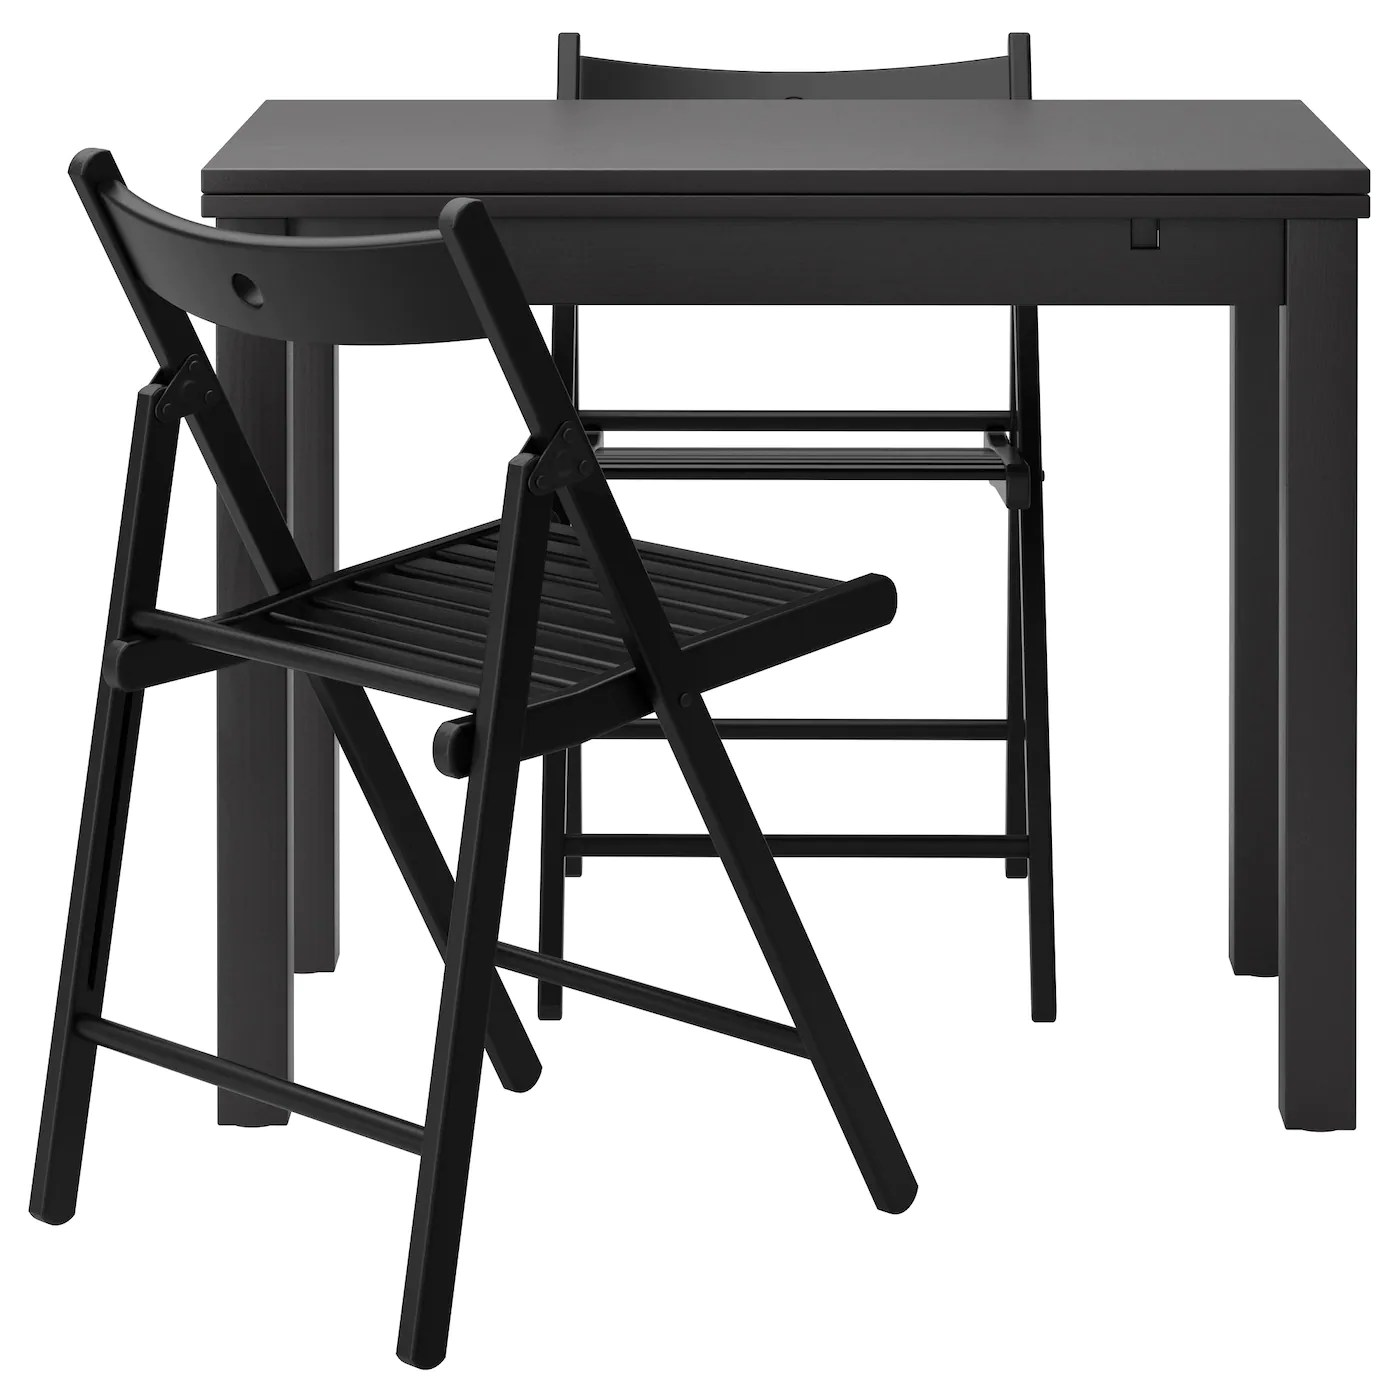 black table and chairs chair london design museum terje bjursta 2 brown 50 cm